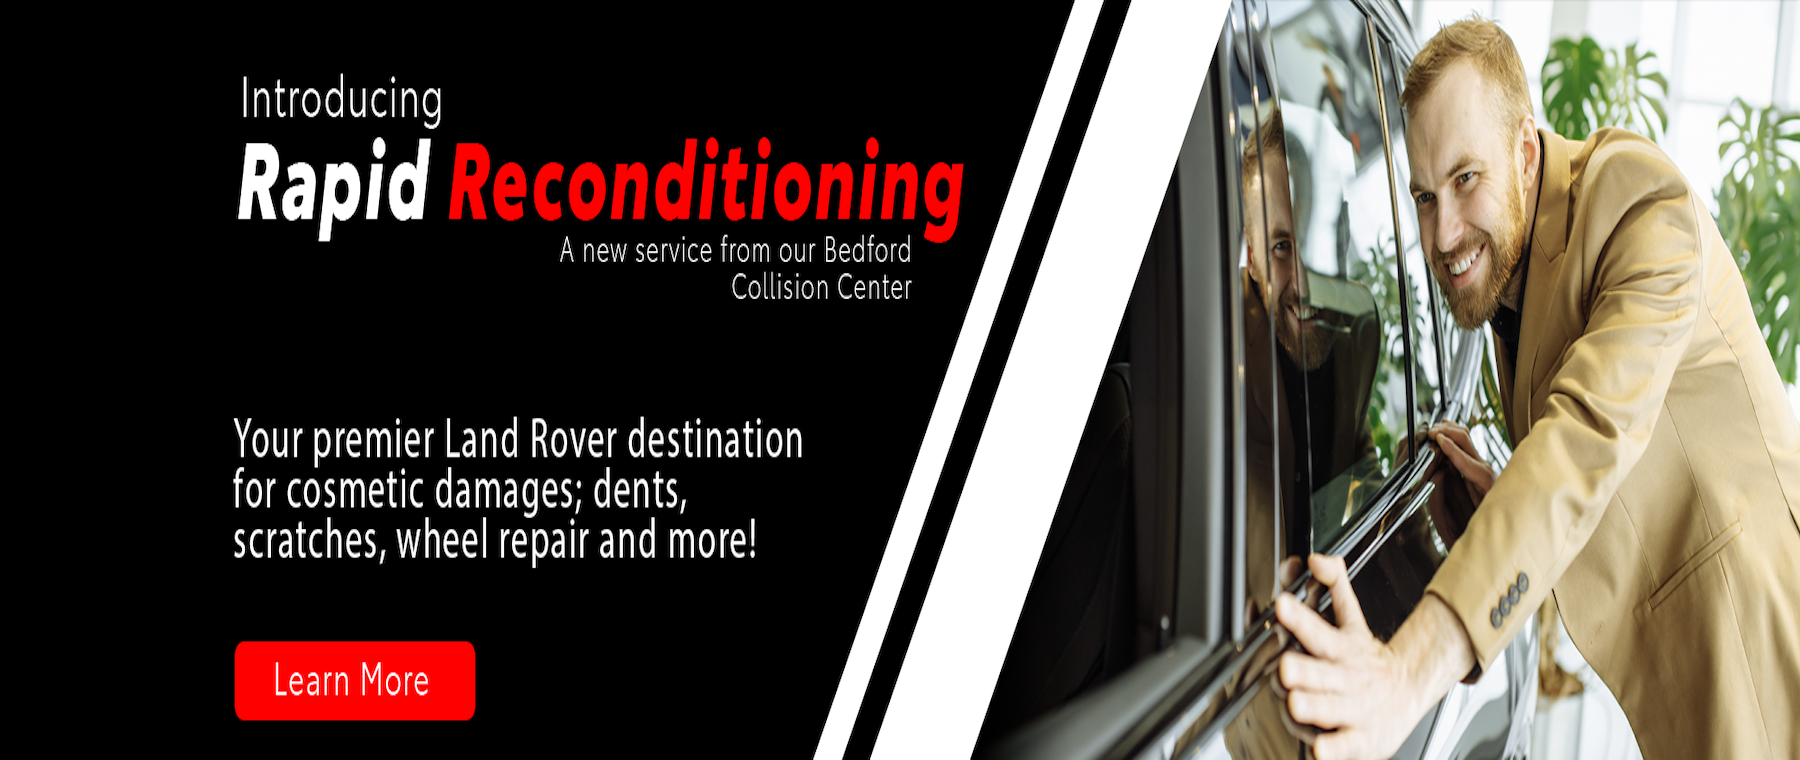 Rapid reconditioning at Fairfield Collision Center